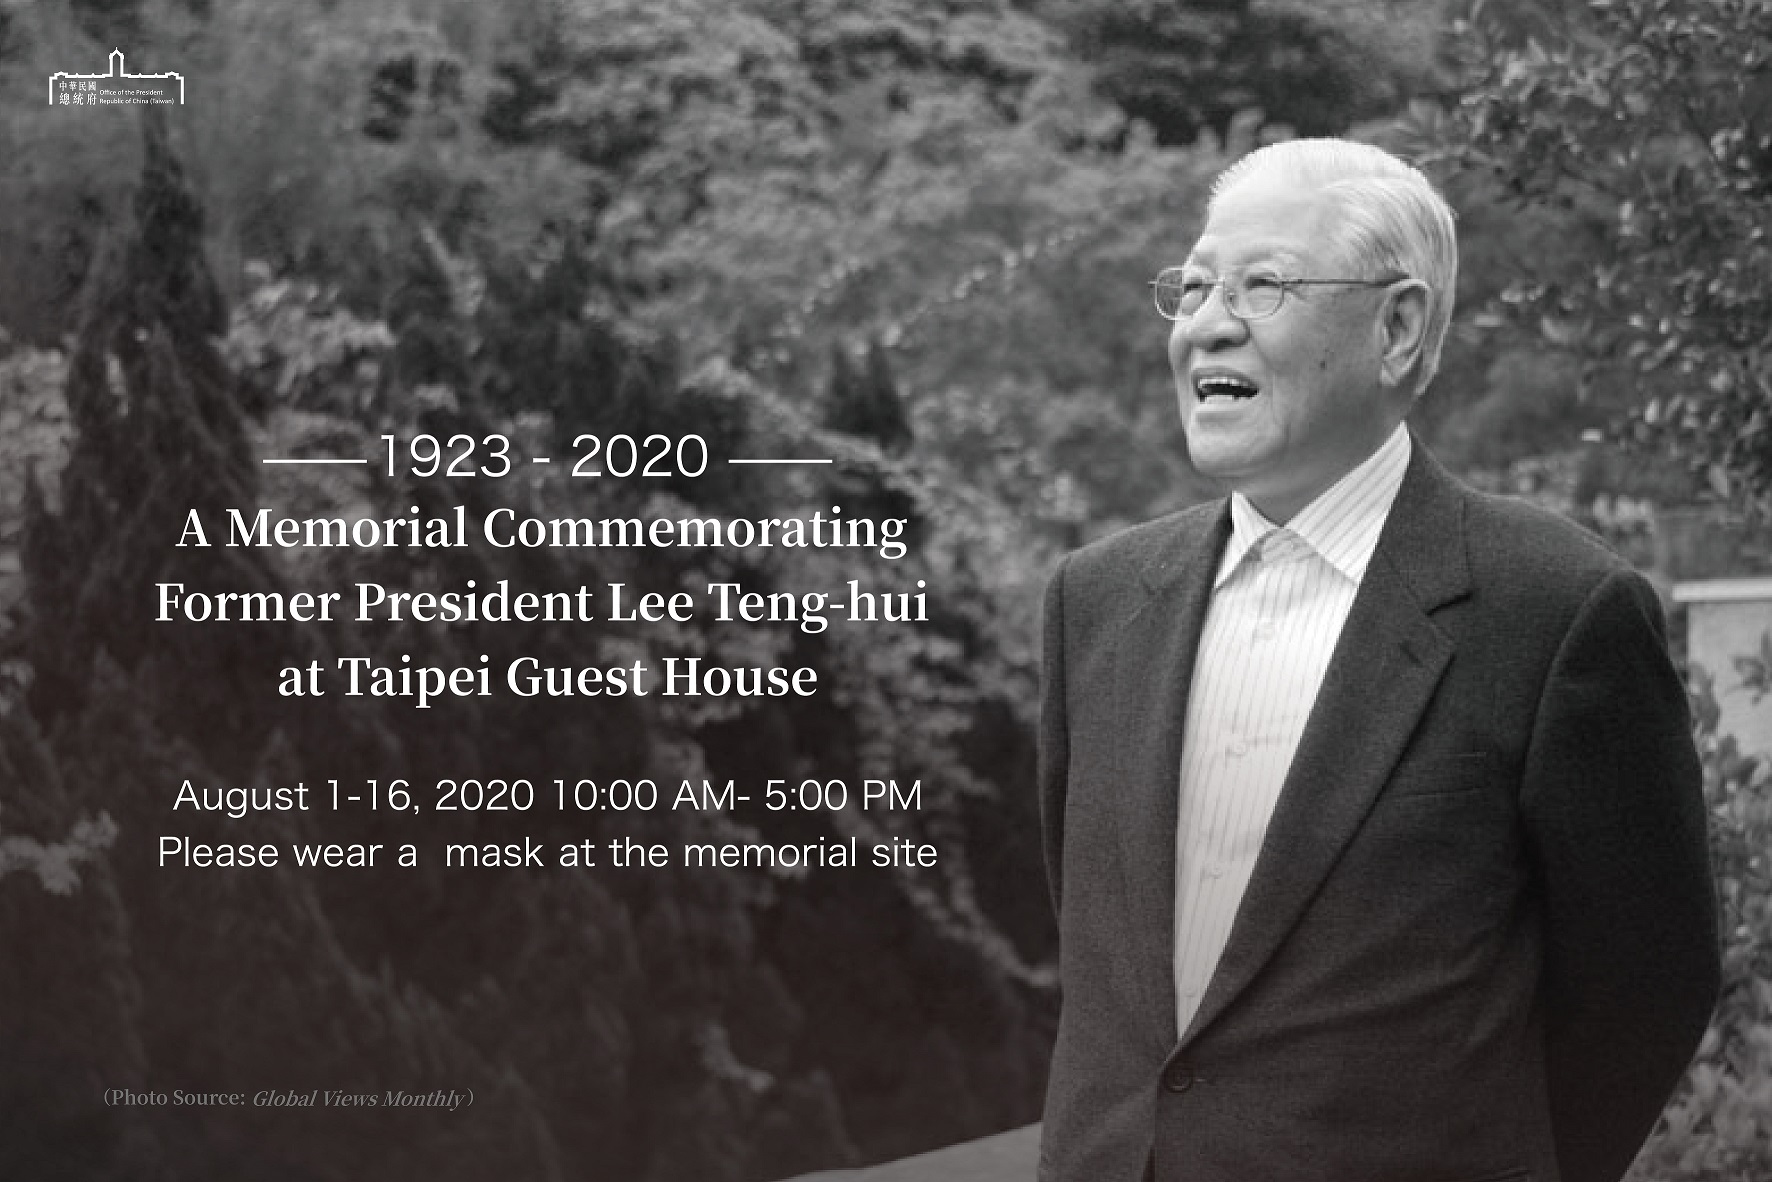 A Memorial Commemorating Former President Lee Teng-hui at Taipei Guest House|Hours: August 1-16, 2020 10:00 AM- 5:00 PM|Please wear a mask to enter the memorial